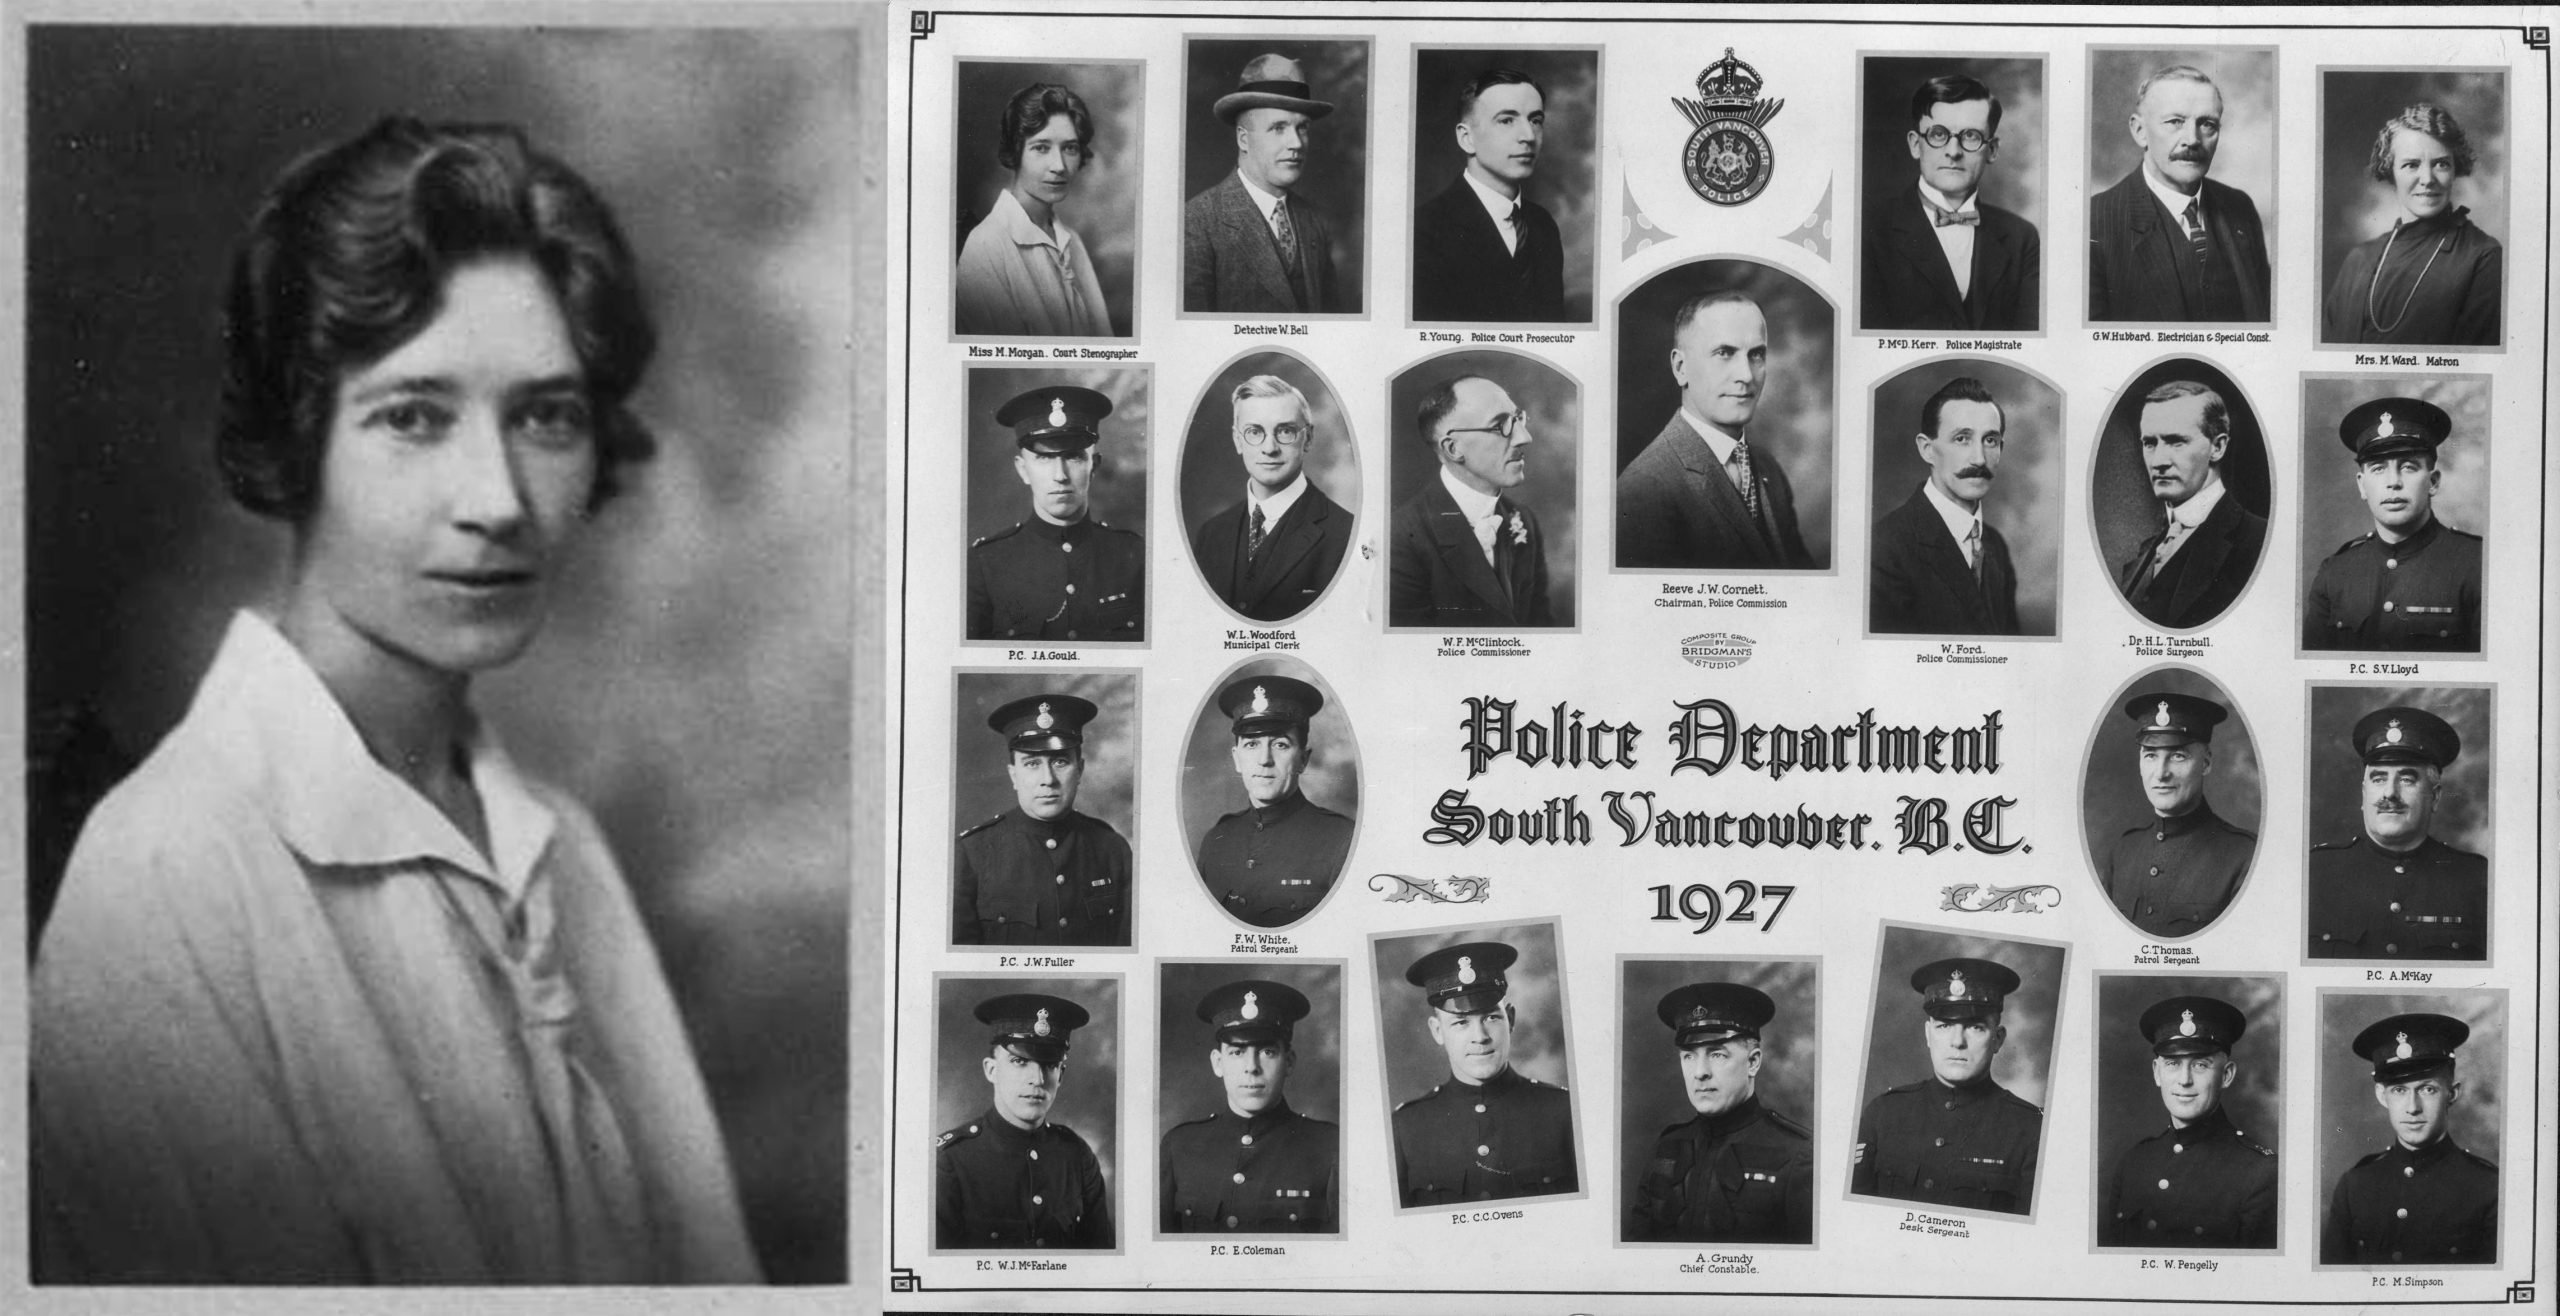 The portrait on the left shows Mary Morgan, Court Stenographer. This image is part of a composite photograph (right) showing employee portraits of the South Vancouver Police Department in 1927. Reference code: VPD-S214-: CVA 480-123